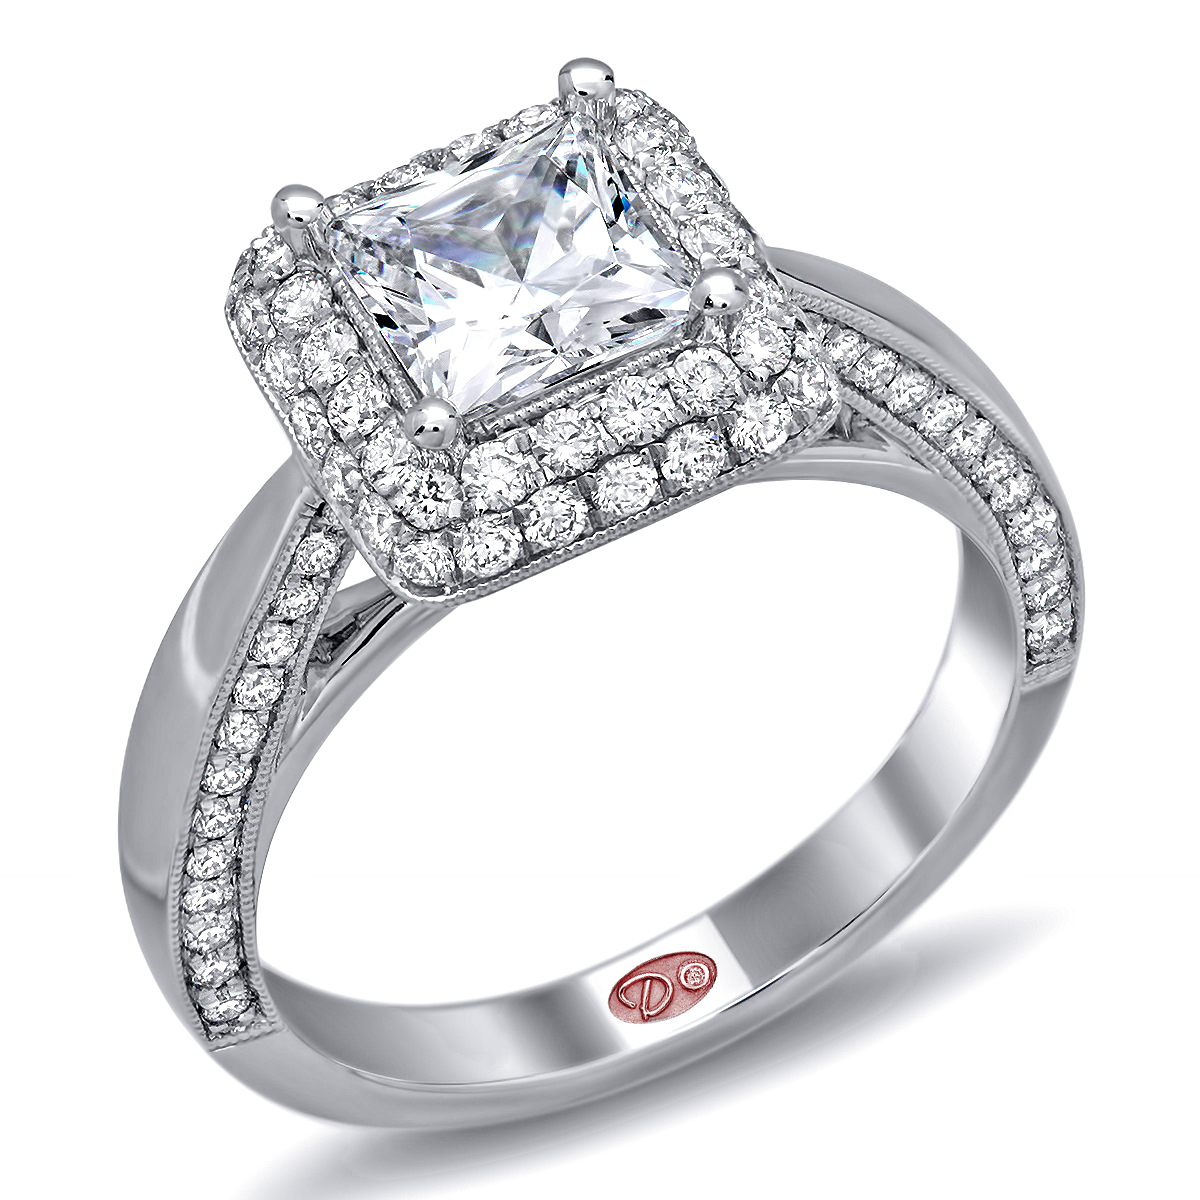 Designer Engagement Ring Dw6046